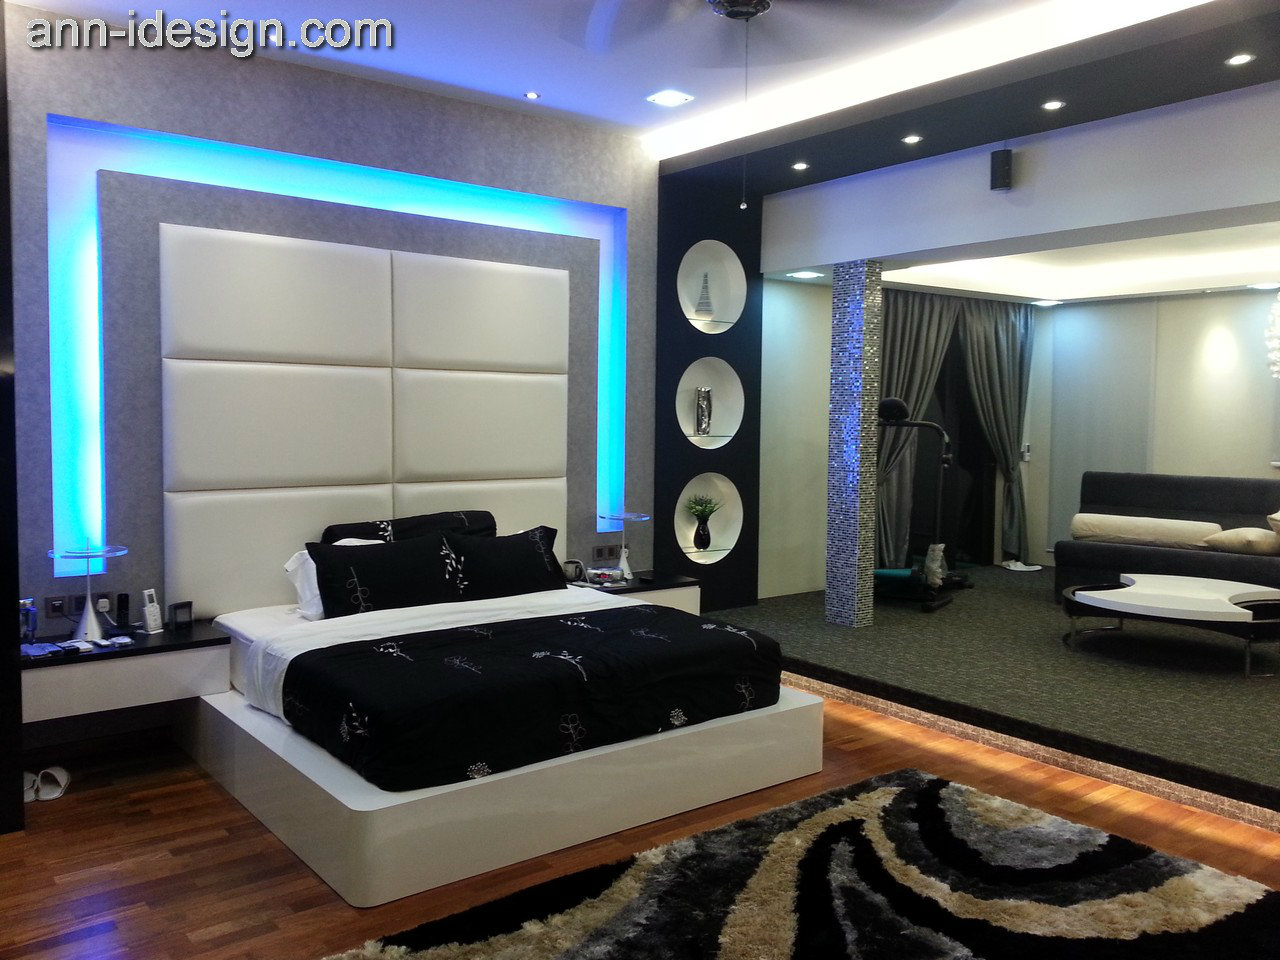 Design Master Room Trendy Ralph And Ricky Laurenus Country With